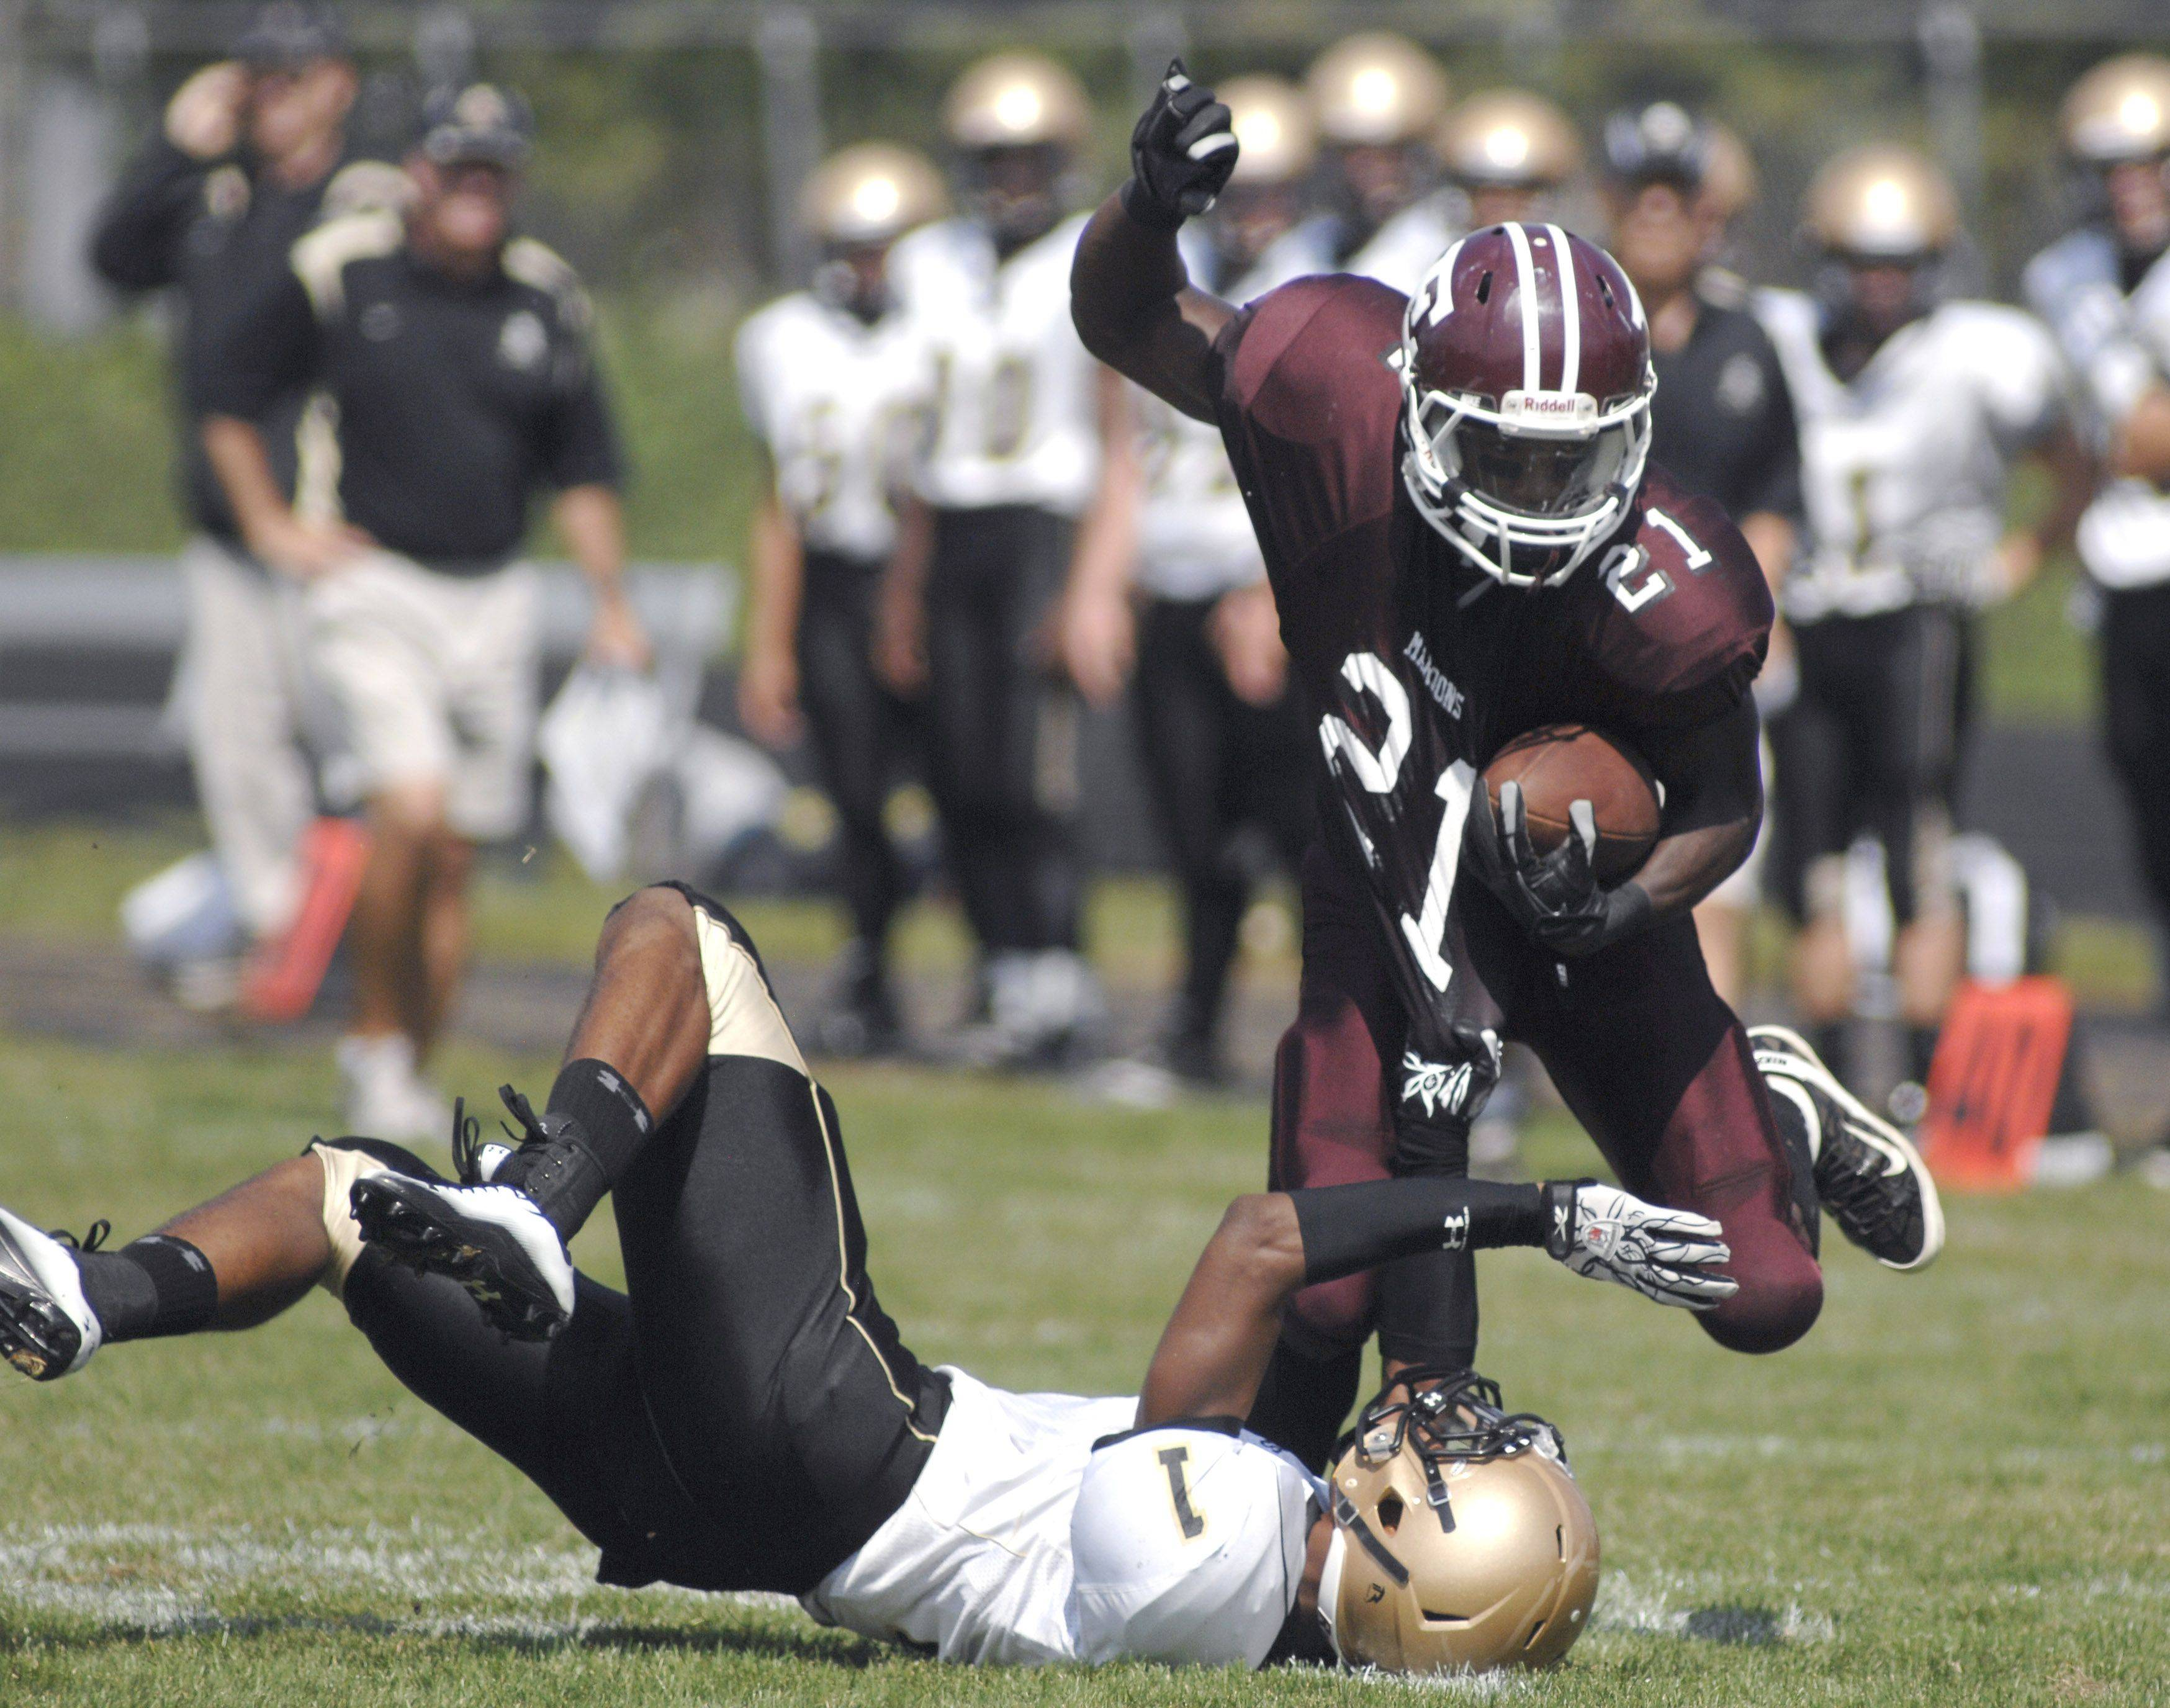 Elgin�s Dennis Moore can�t be pulled down by Streamwood�s Blake Holder in the first quarter on Saturday, September 10.